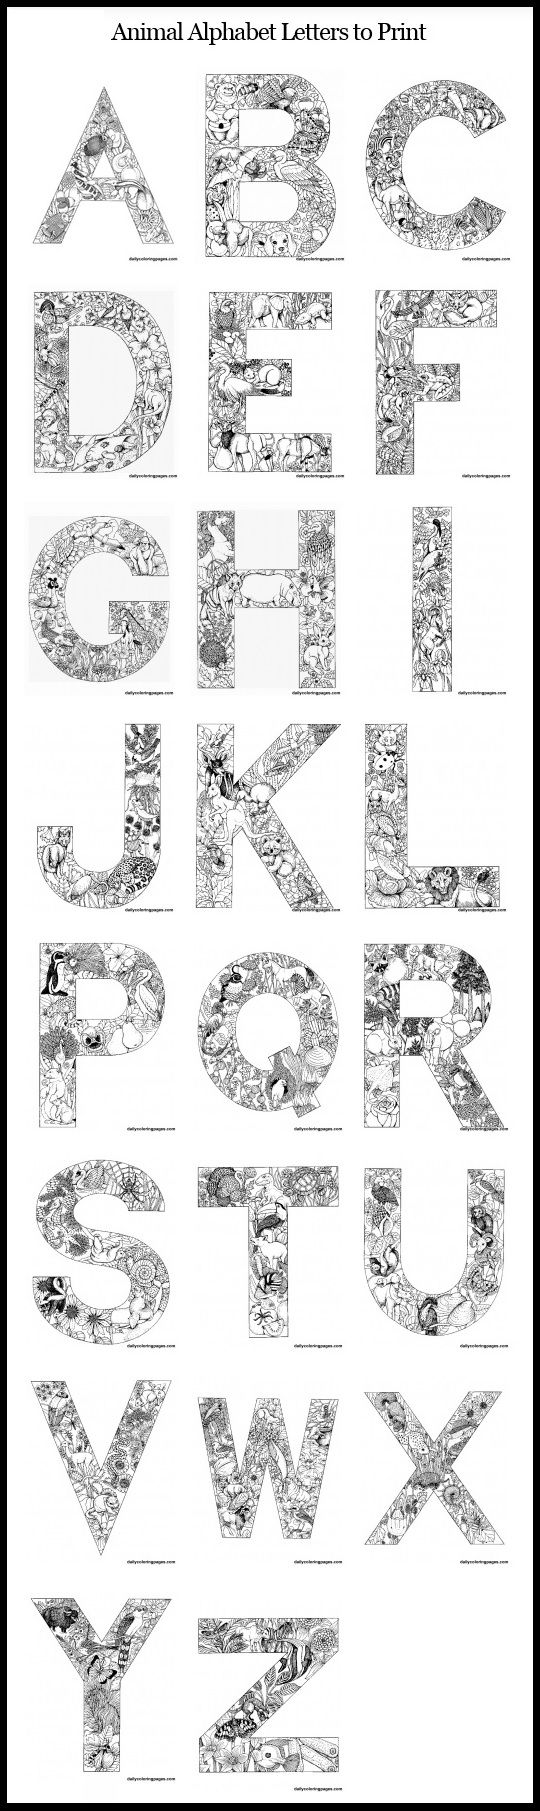 animal alphabet letters to print free printable coloring pages